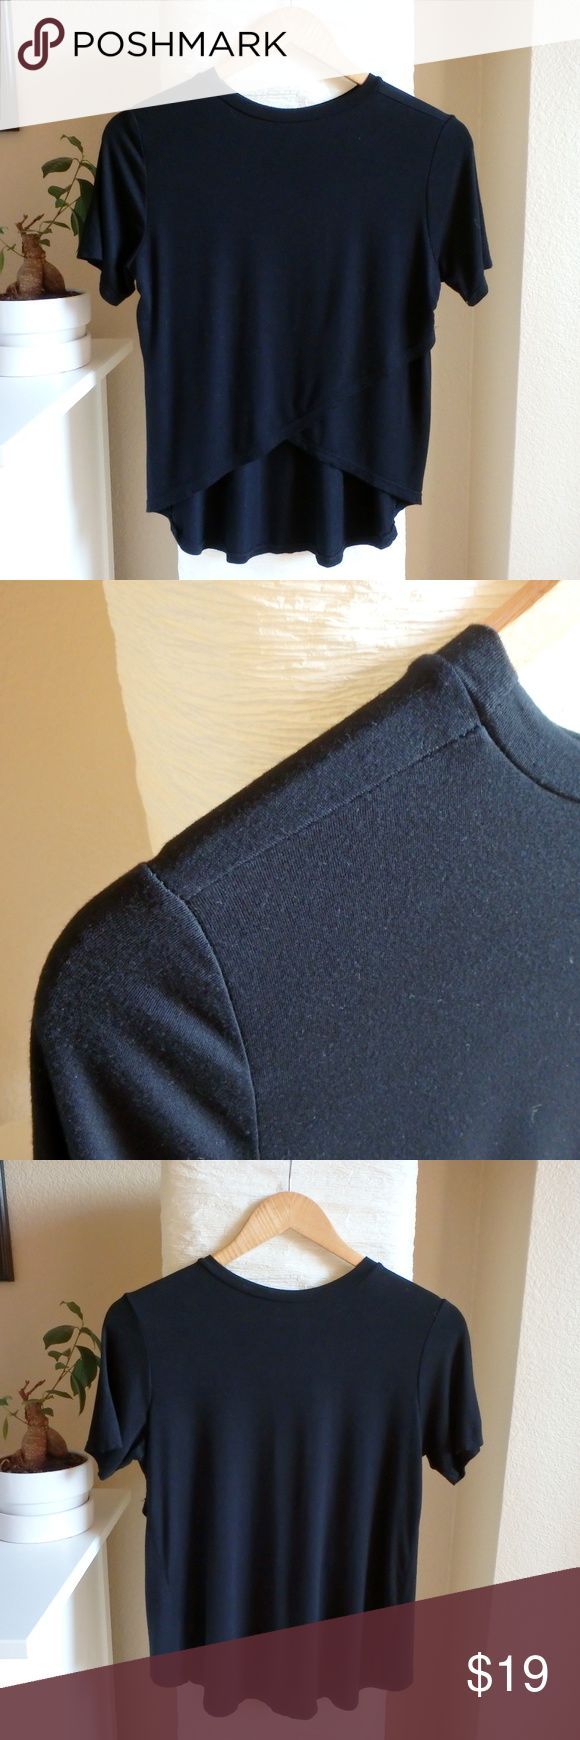 """Open Back Tee in Black Don't Ask Why Soft jersey t-shirt - Made in Italy - One size - Condition: Like new, no holes, stains or pulls - Measurements: Bust: 17 3/4"""", Length (front): 24 5/8"""", Length (back): 16 3/4"""" - Smoke free, pet free home - Thanks for stopping by! American Eagle Outfitters Tops Tees - Short Sleeve"""